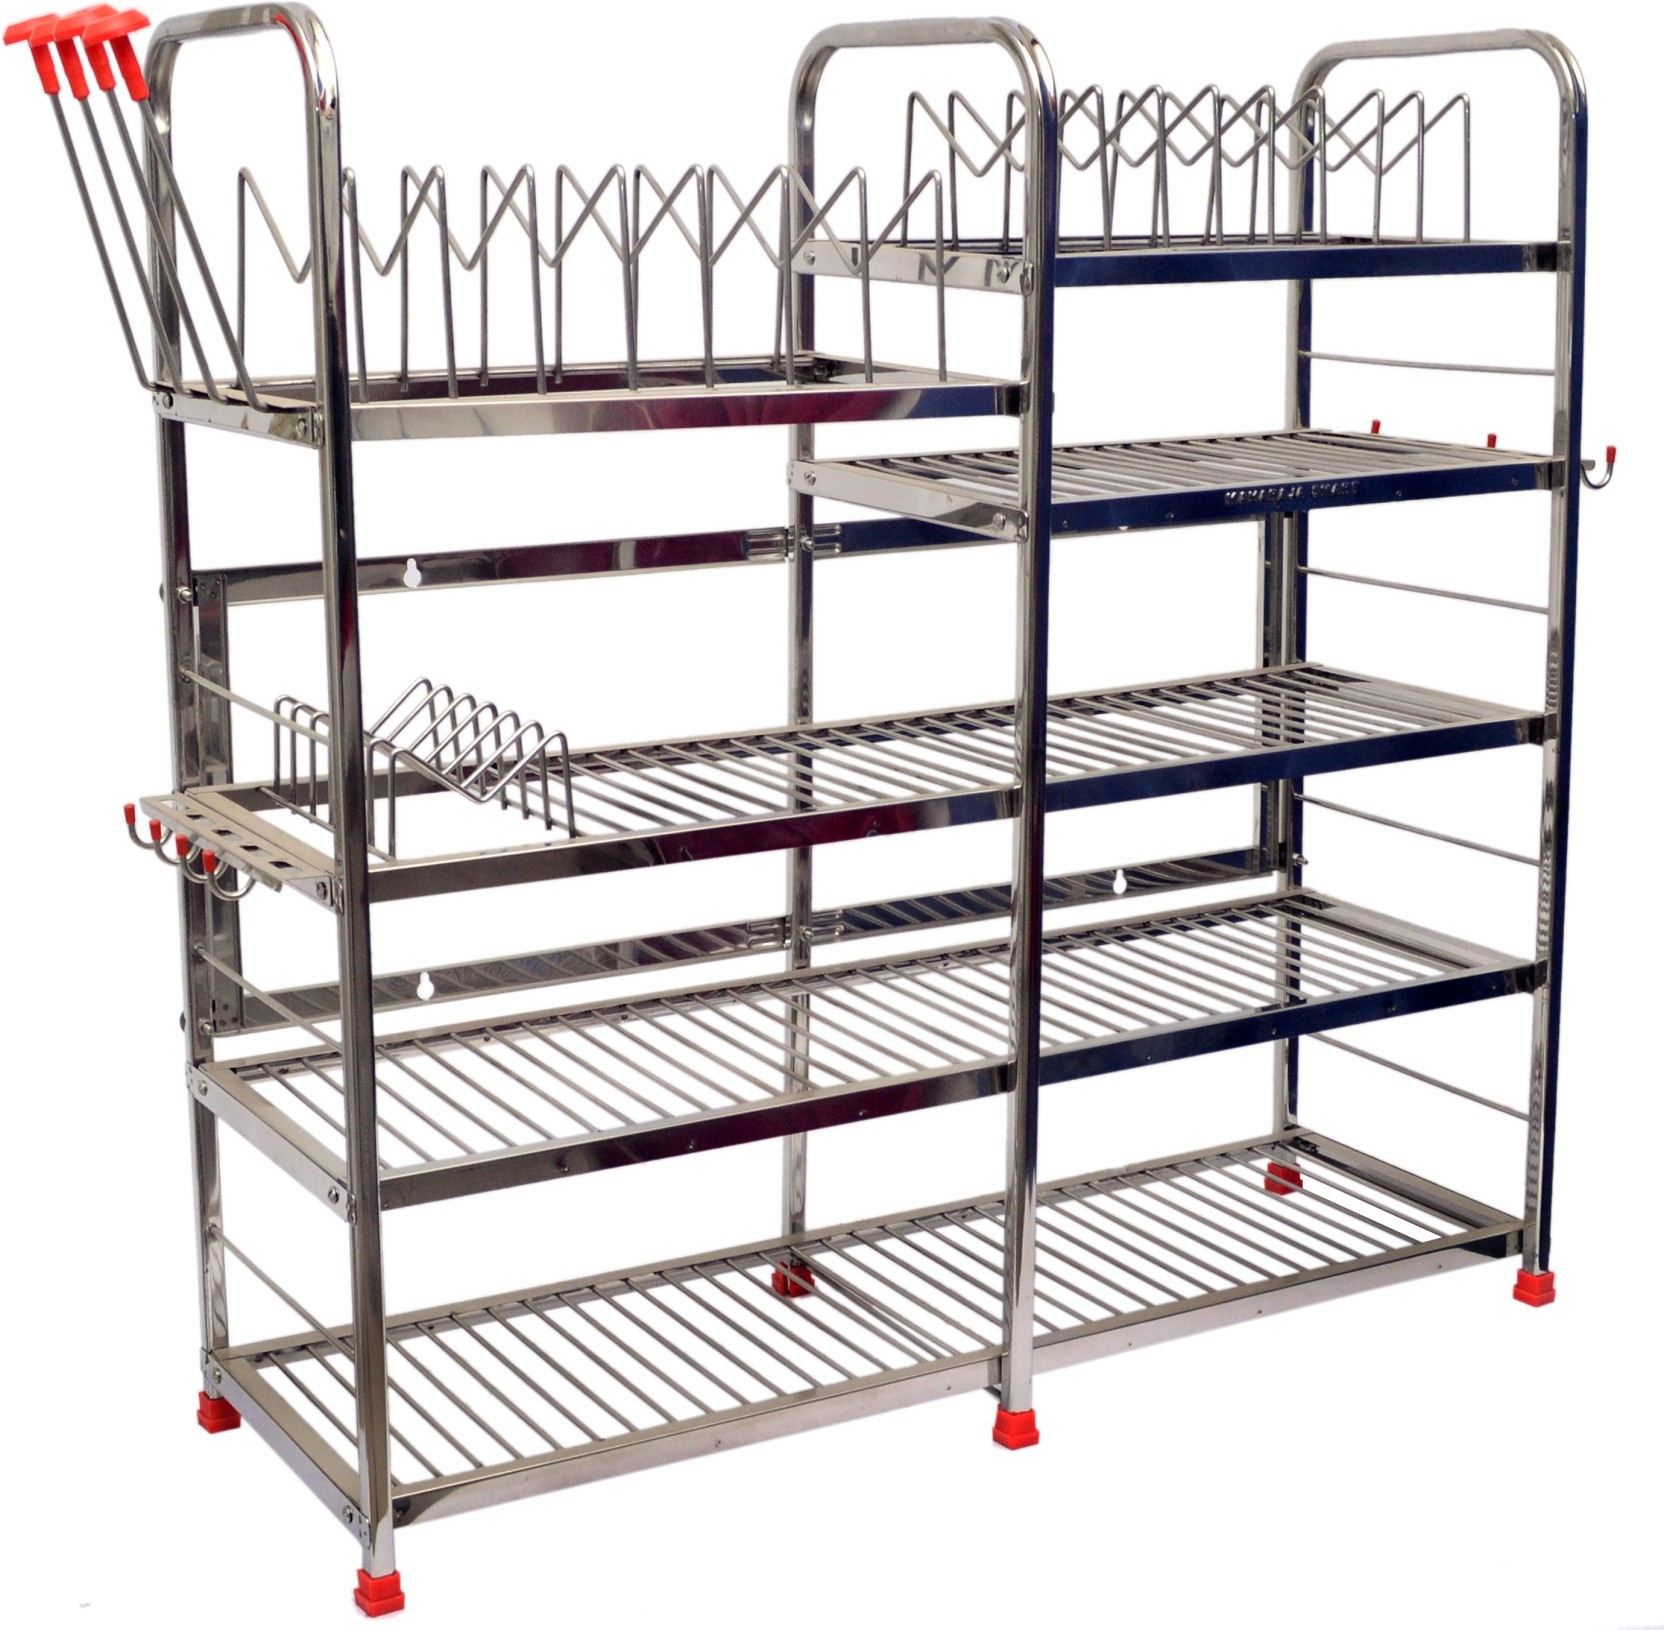 Maharaja Stainless Steel Kitchen Rack Price In India